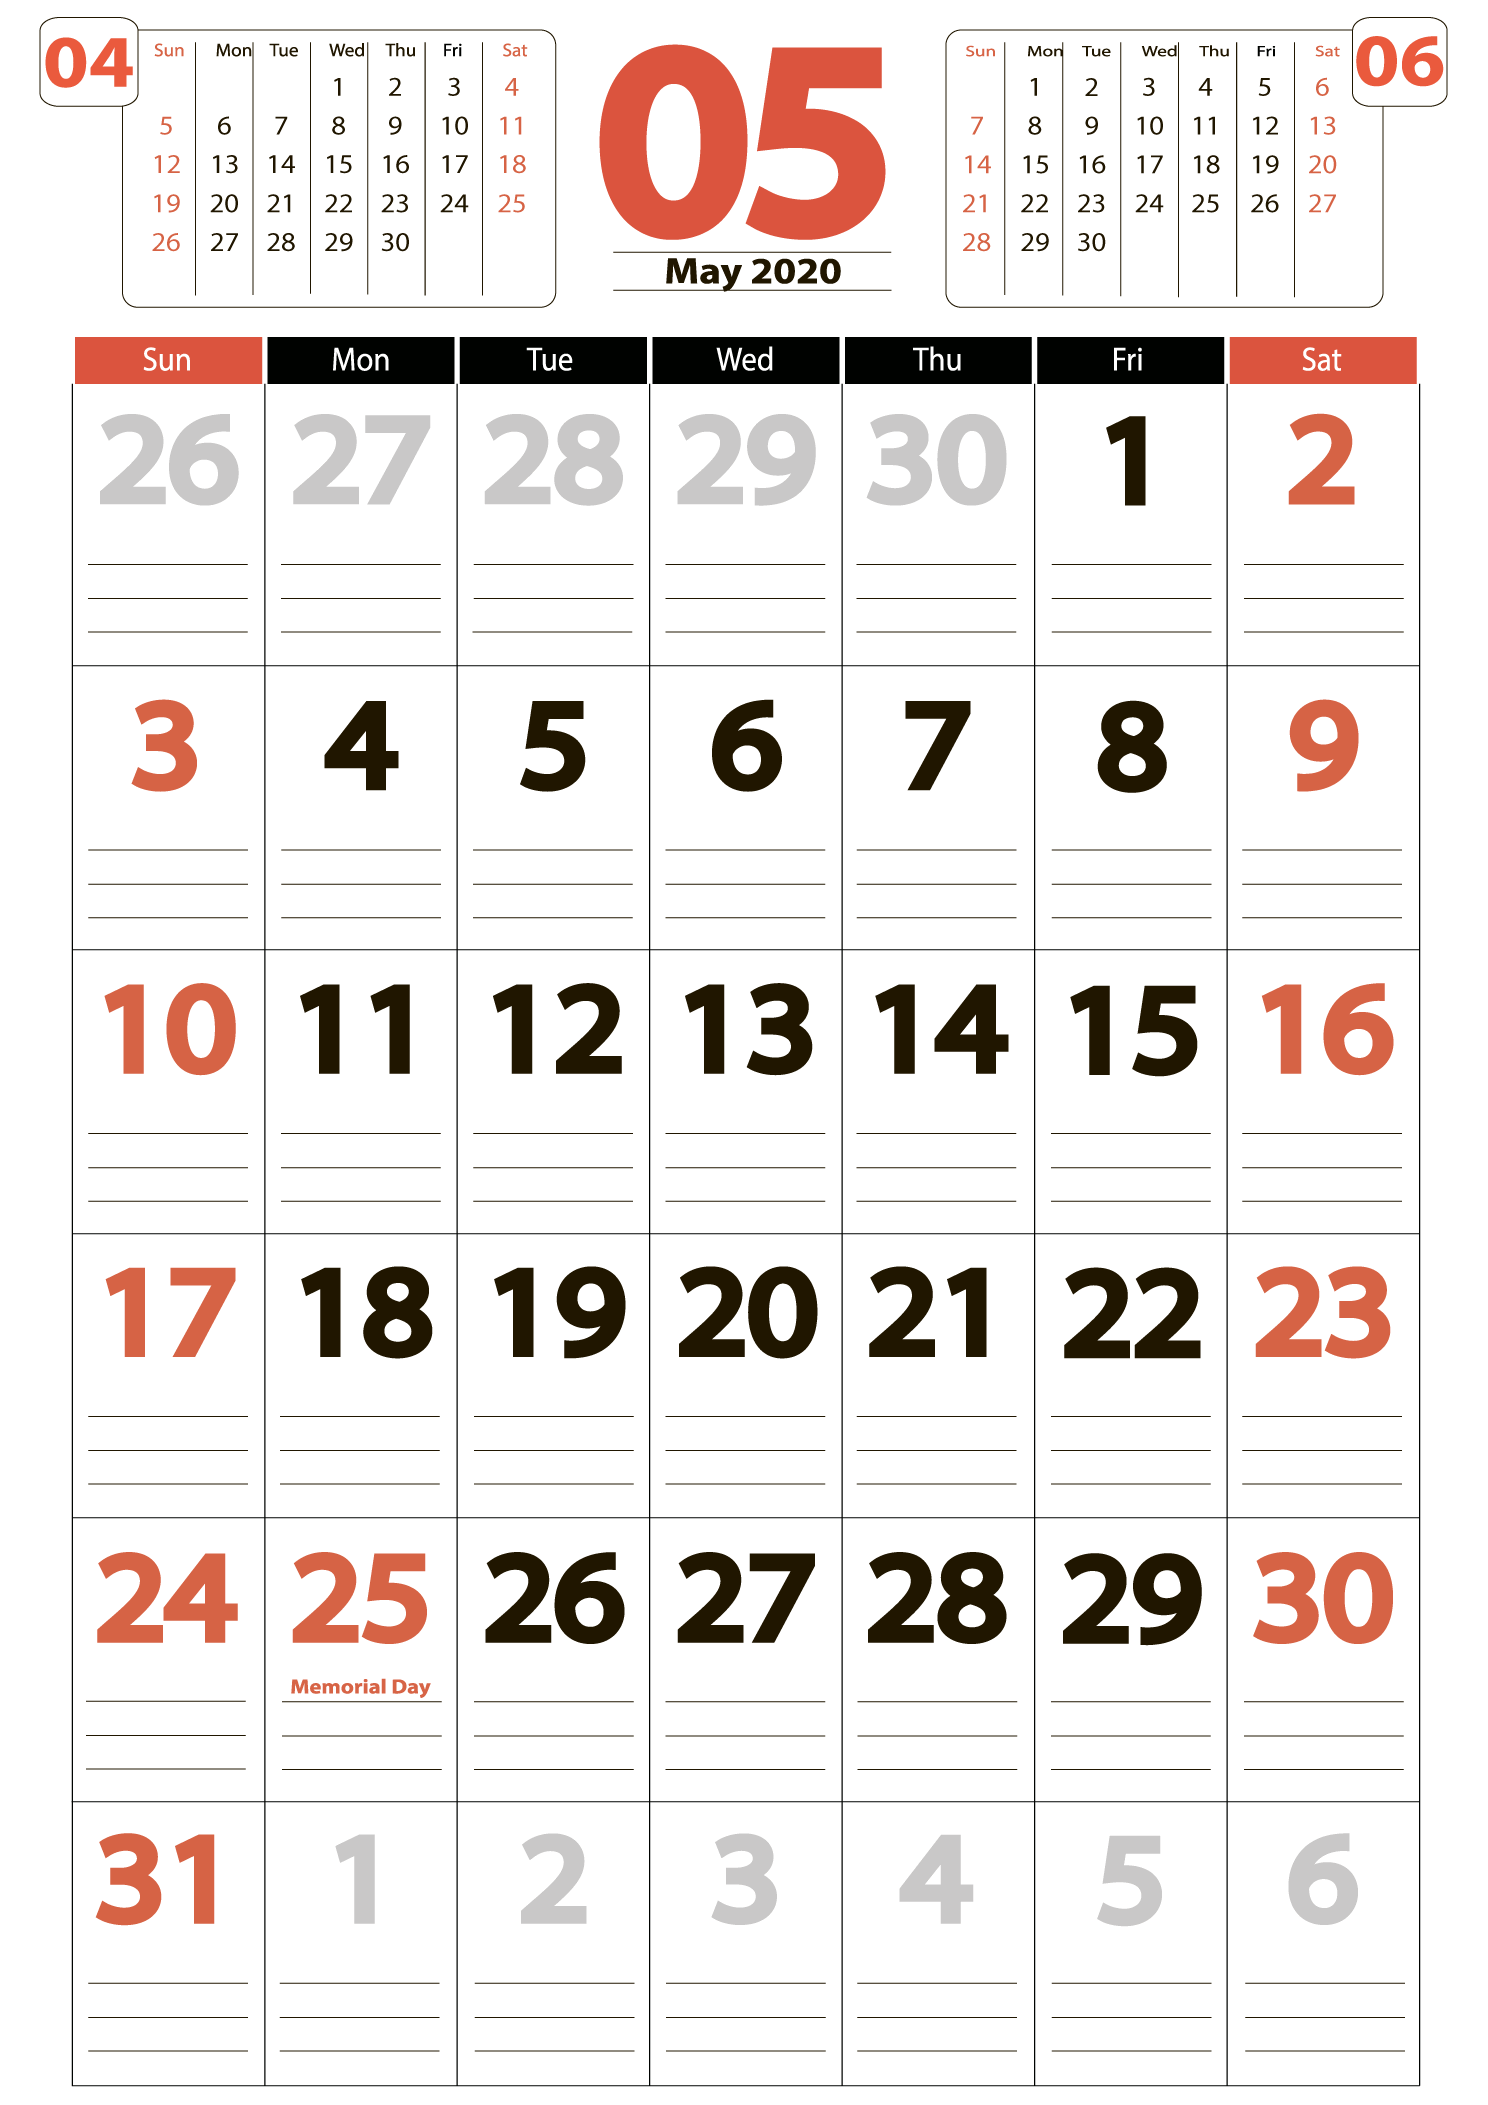 Download calendar may 2020